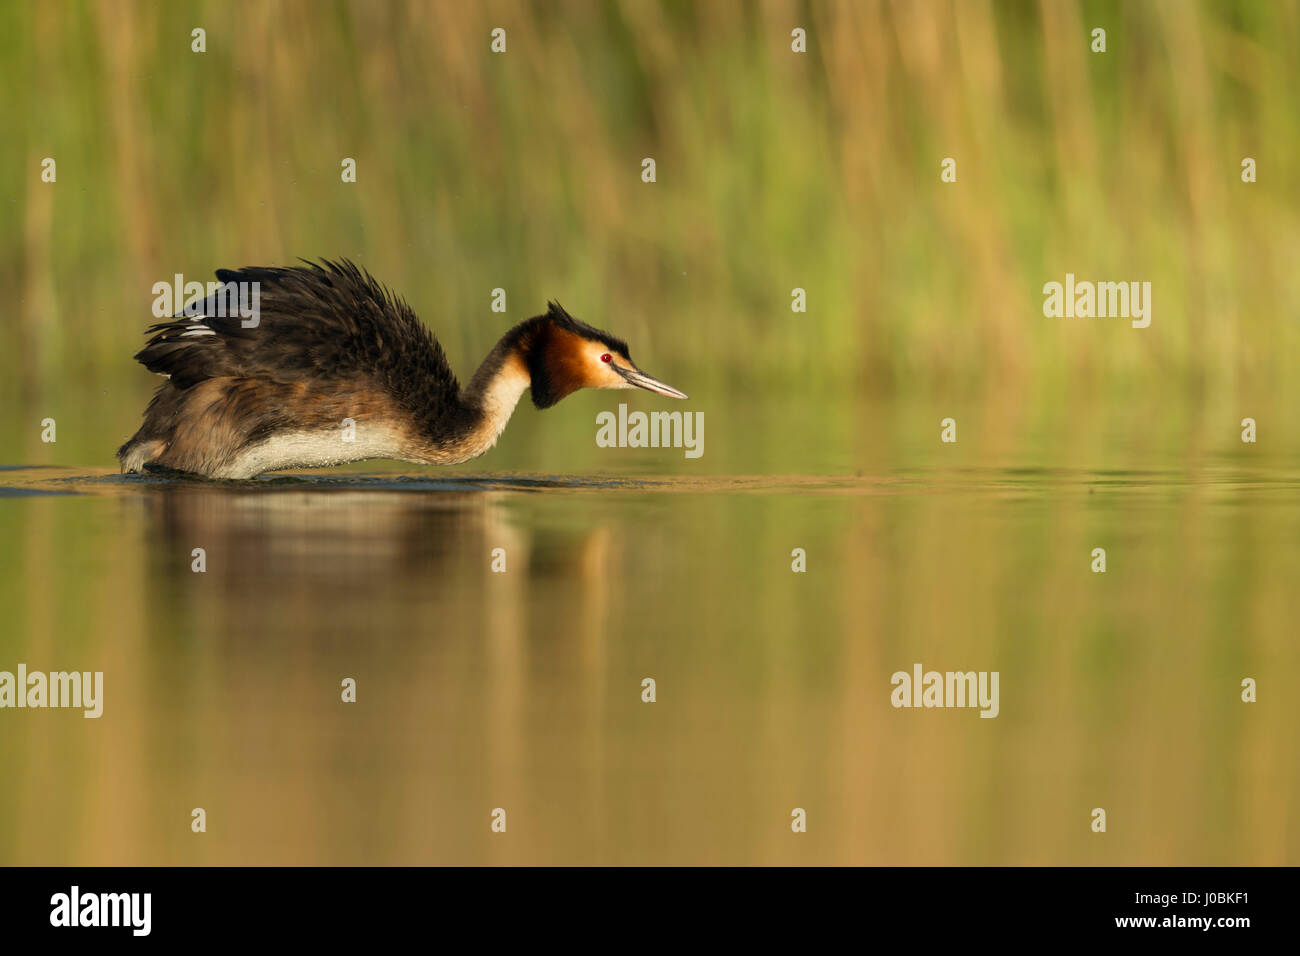 Great Crested Grebe / Haubentaucher ( Podiceps cristatus ) shaking water out off its plumage, natural lake, late - Stock Image